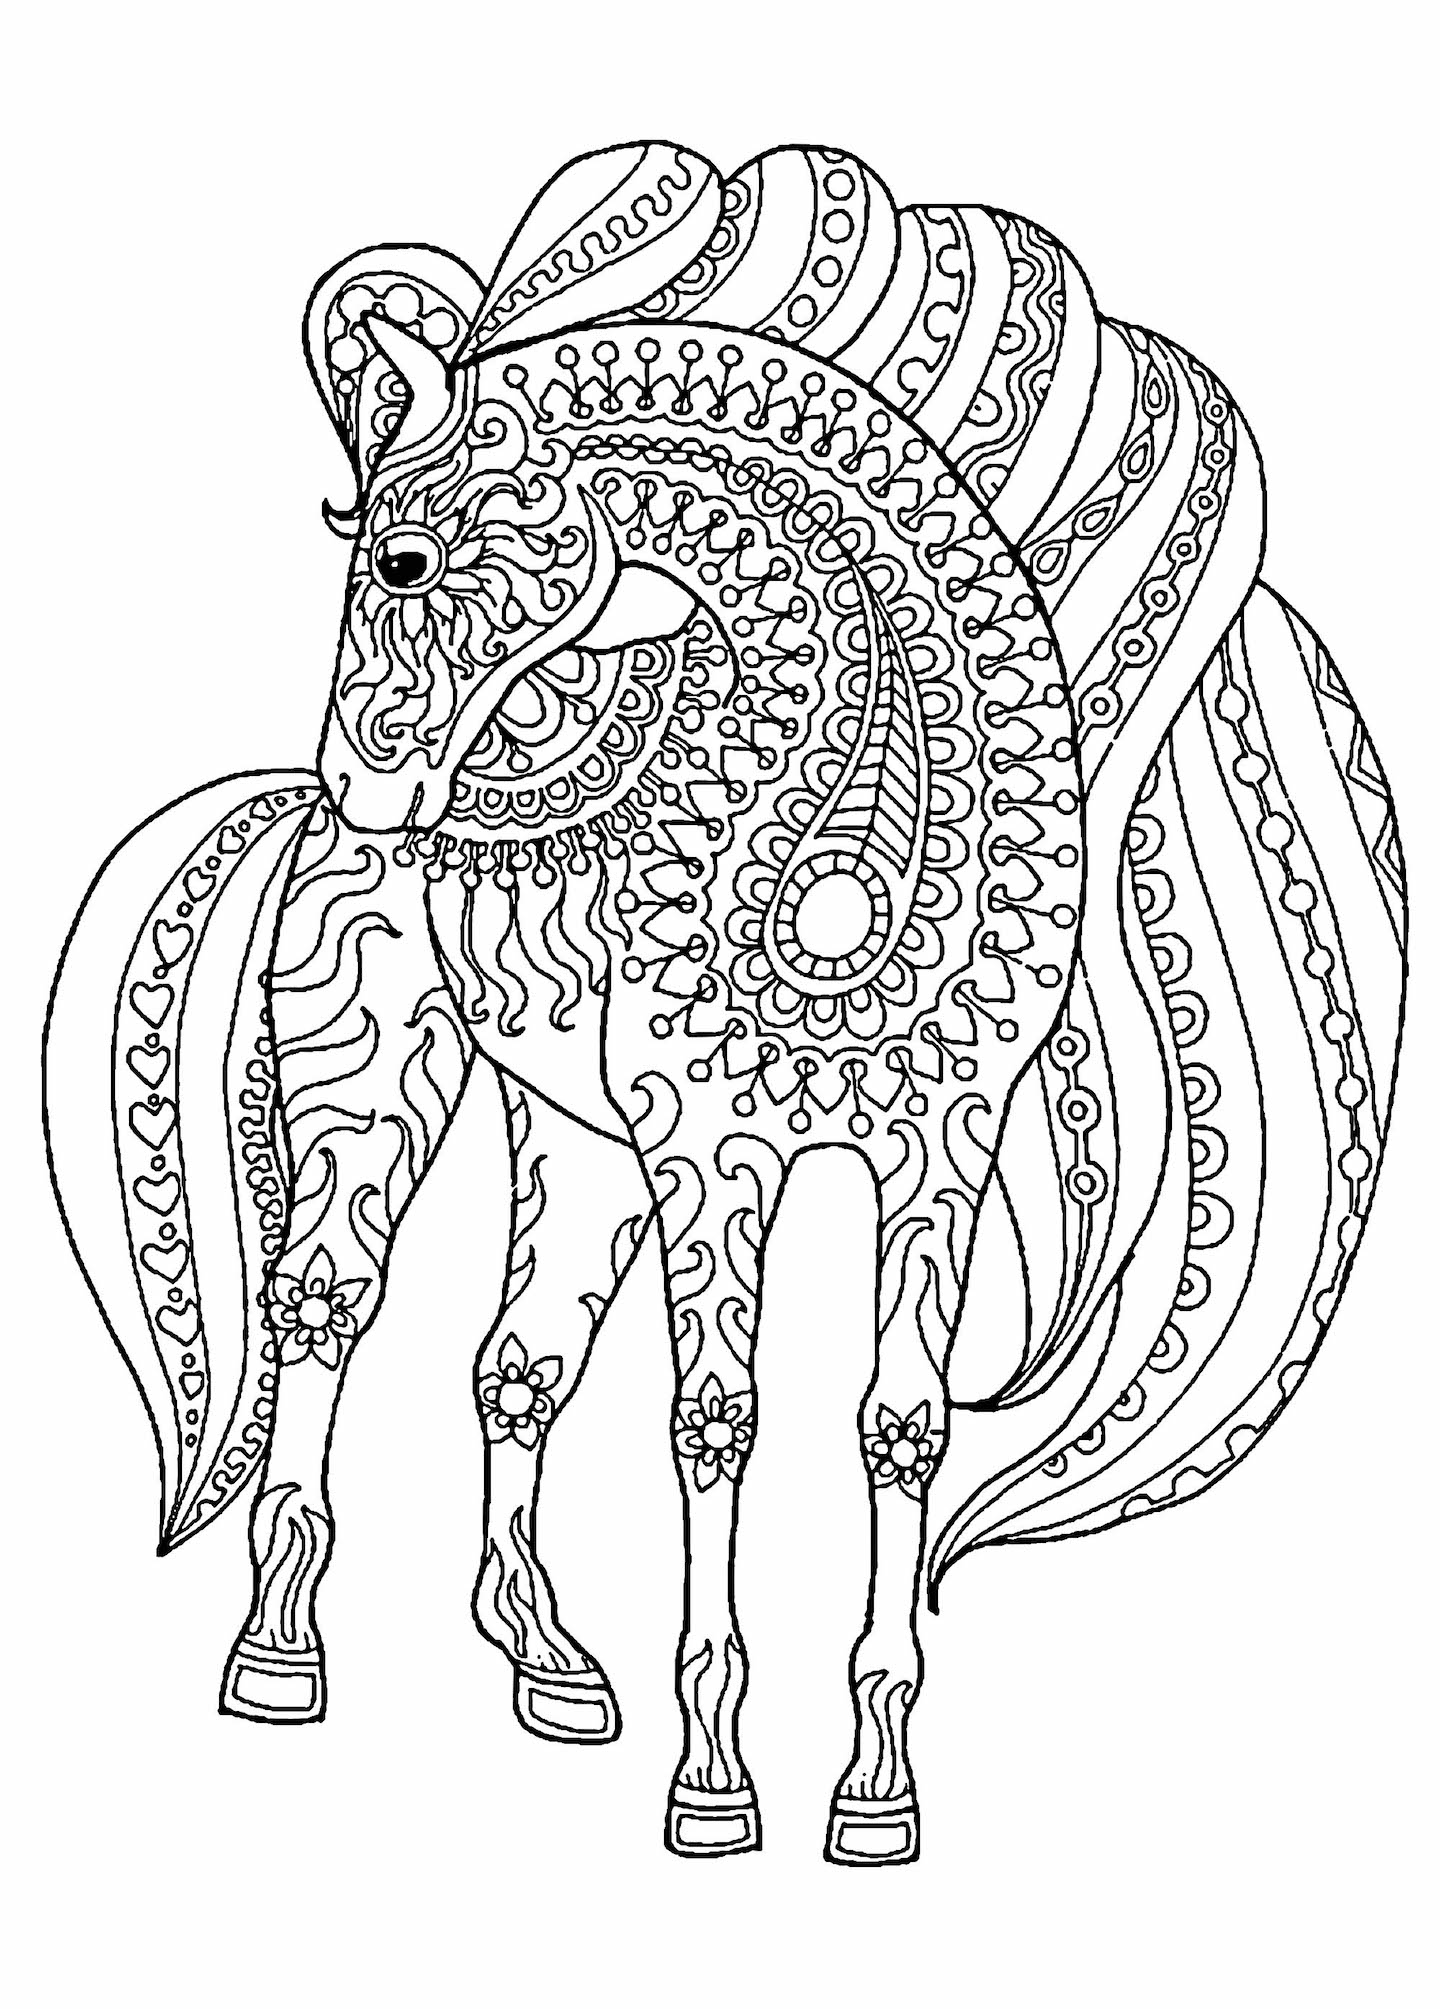 Horse Coloring Pages And Other Free Printable Coloring ...